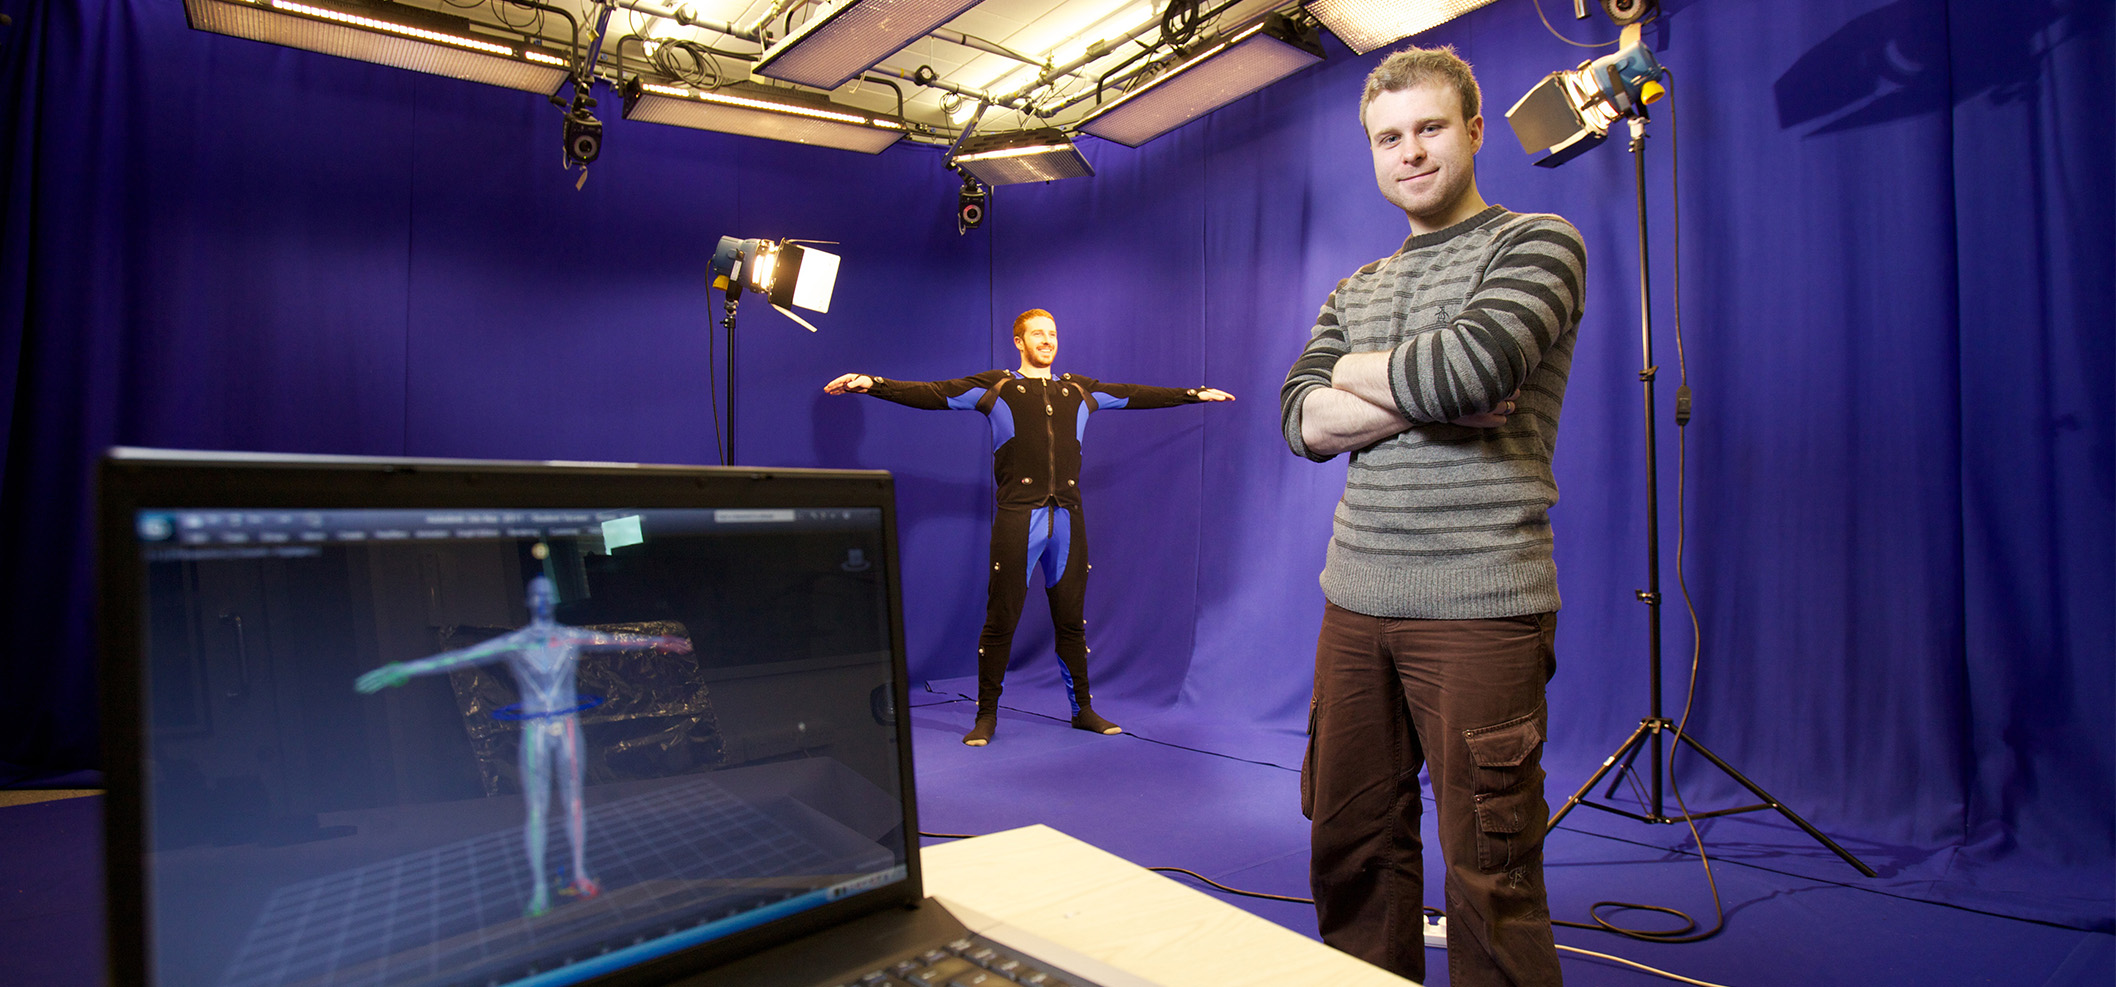 Motion capture suite